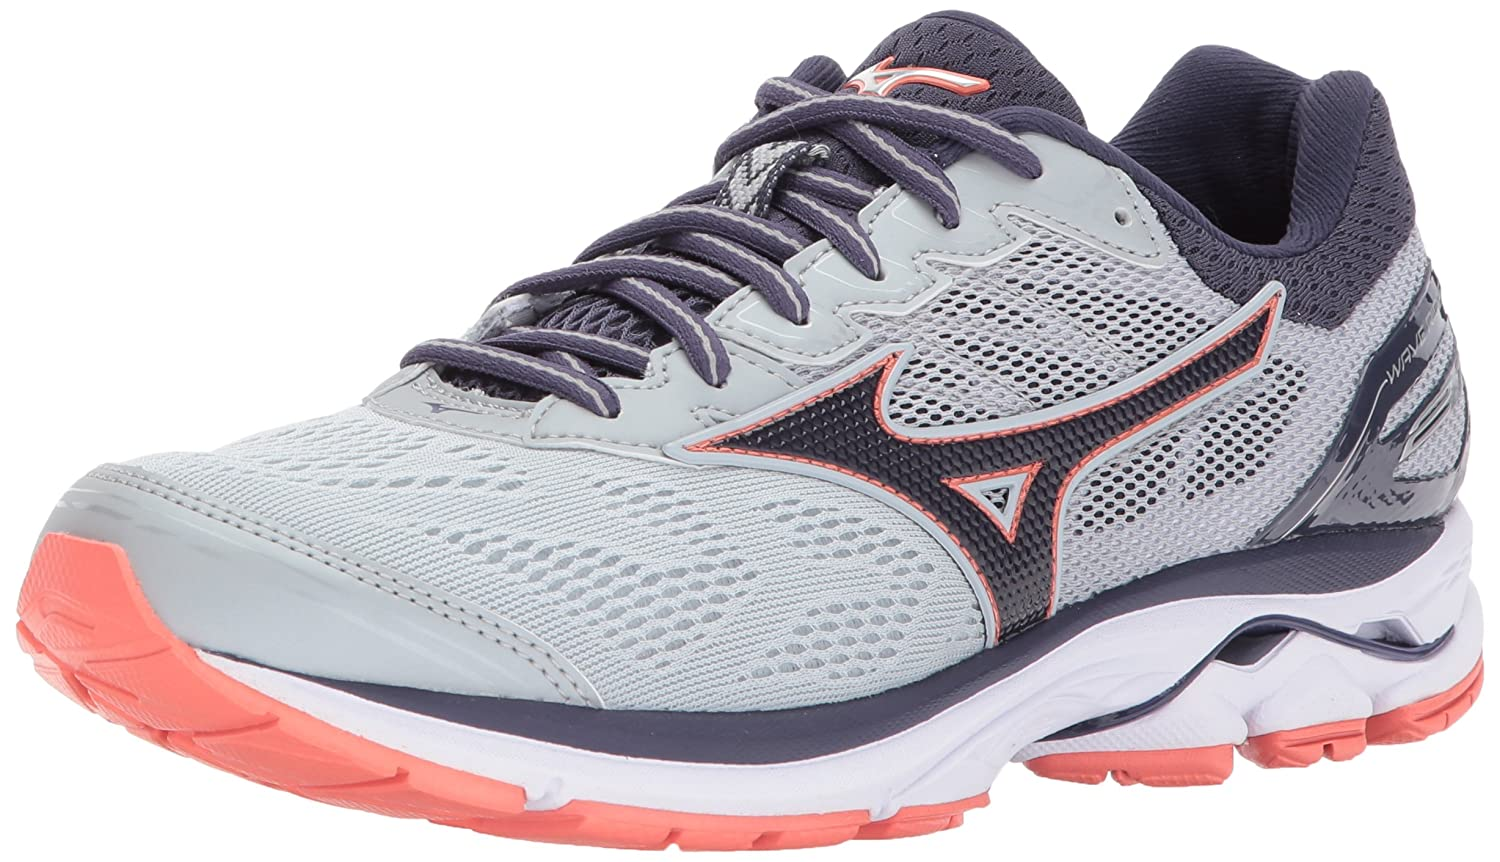 Mizuno Women's Wave Rider 21 Running Shoe B06XG1JSHF 9.5 D US|High Rise/Gray Stone